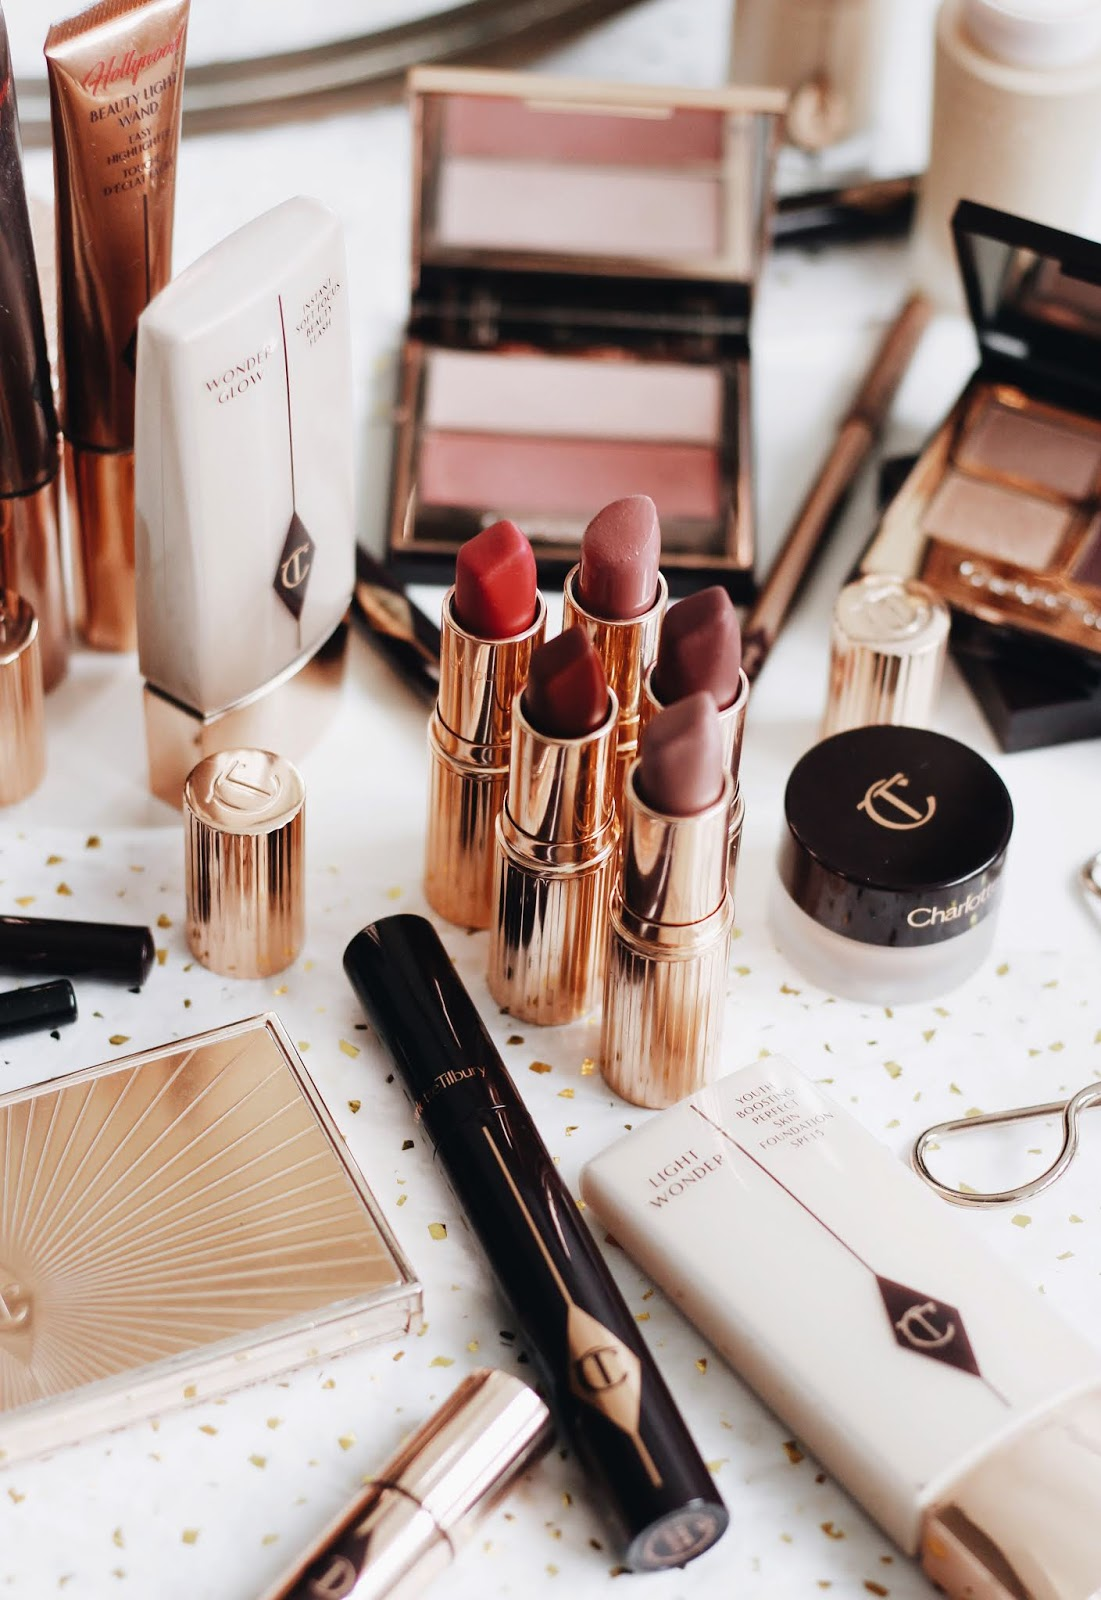 Charlotte Tilbury Lipstick Collection